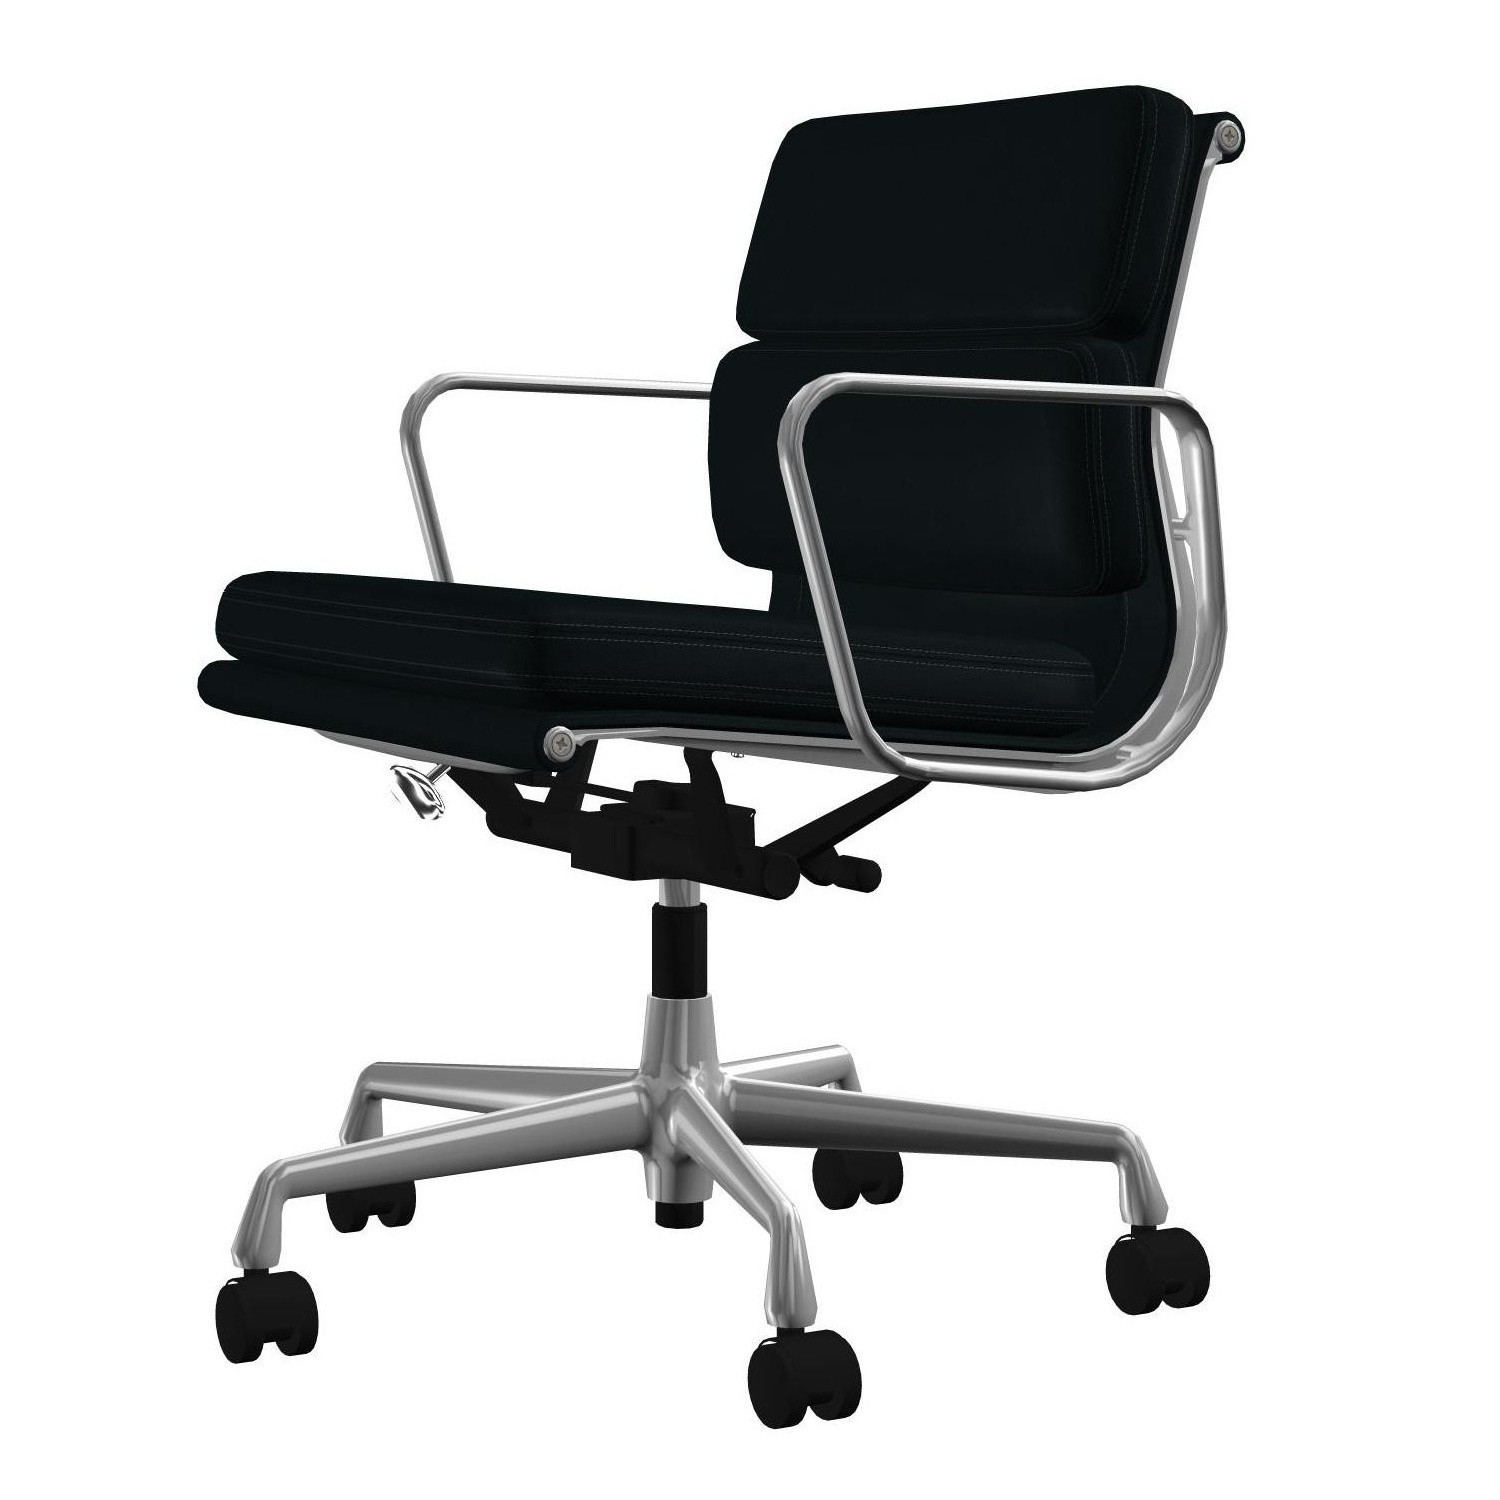 office chair images